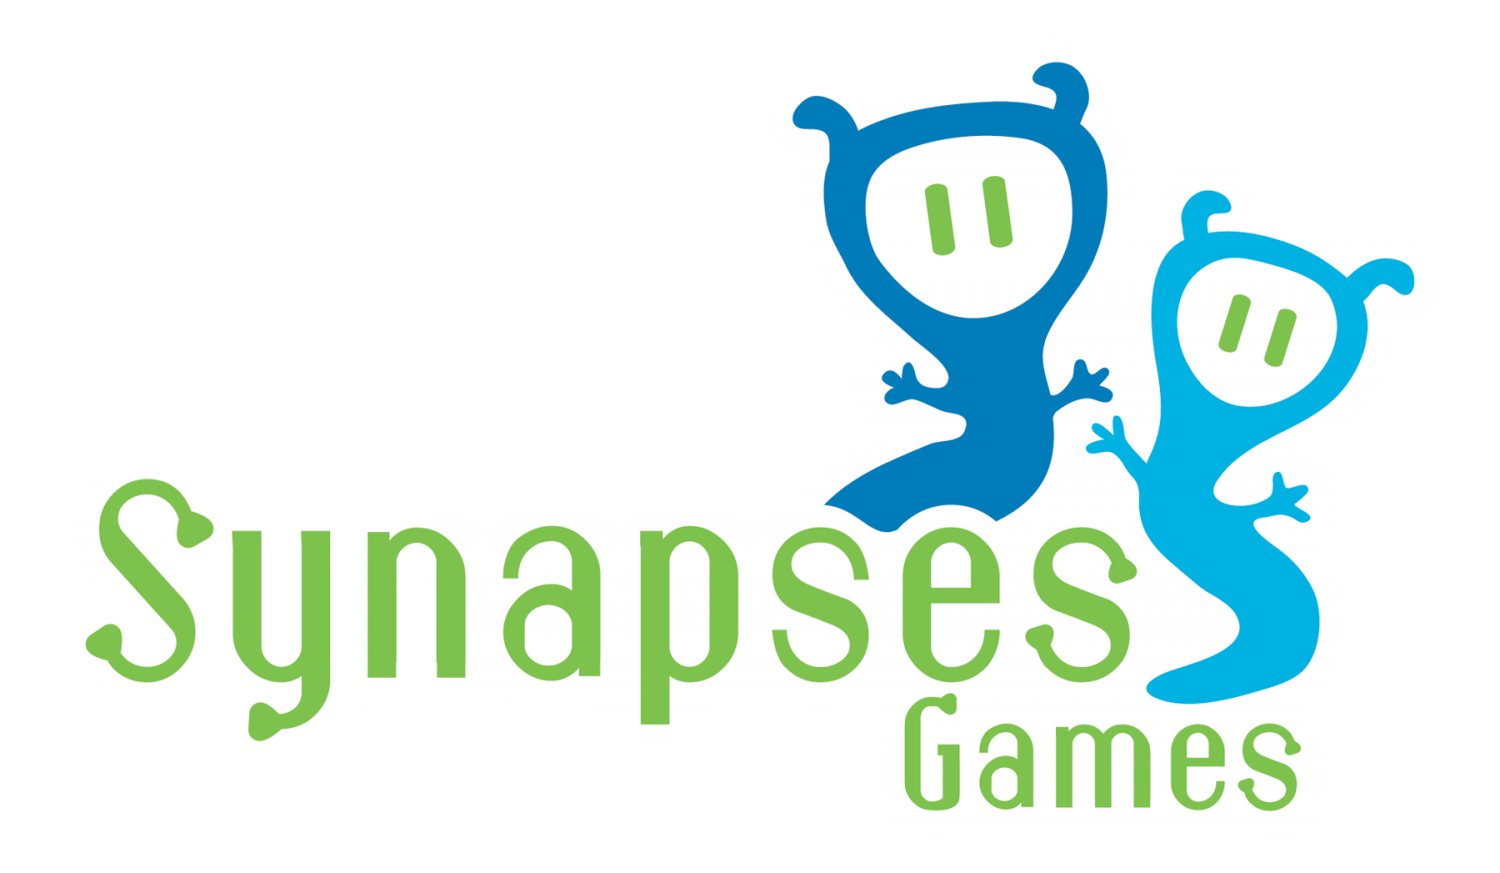 Synapses Games logo